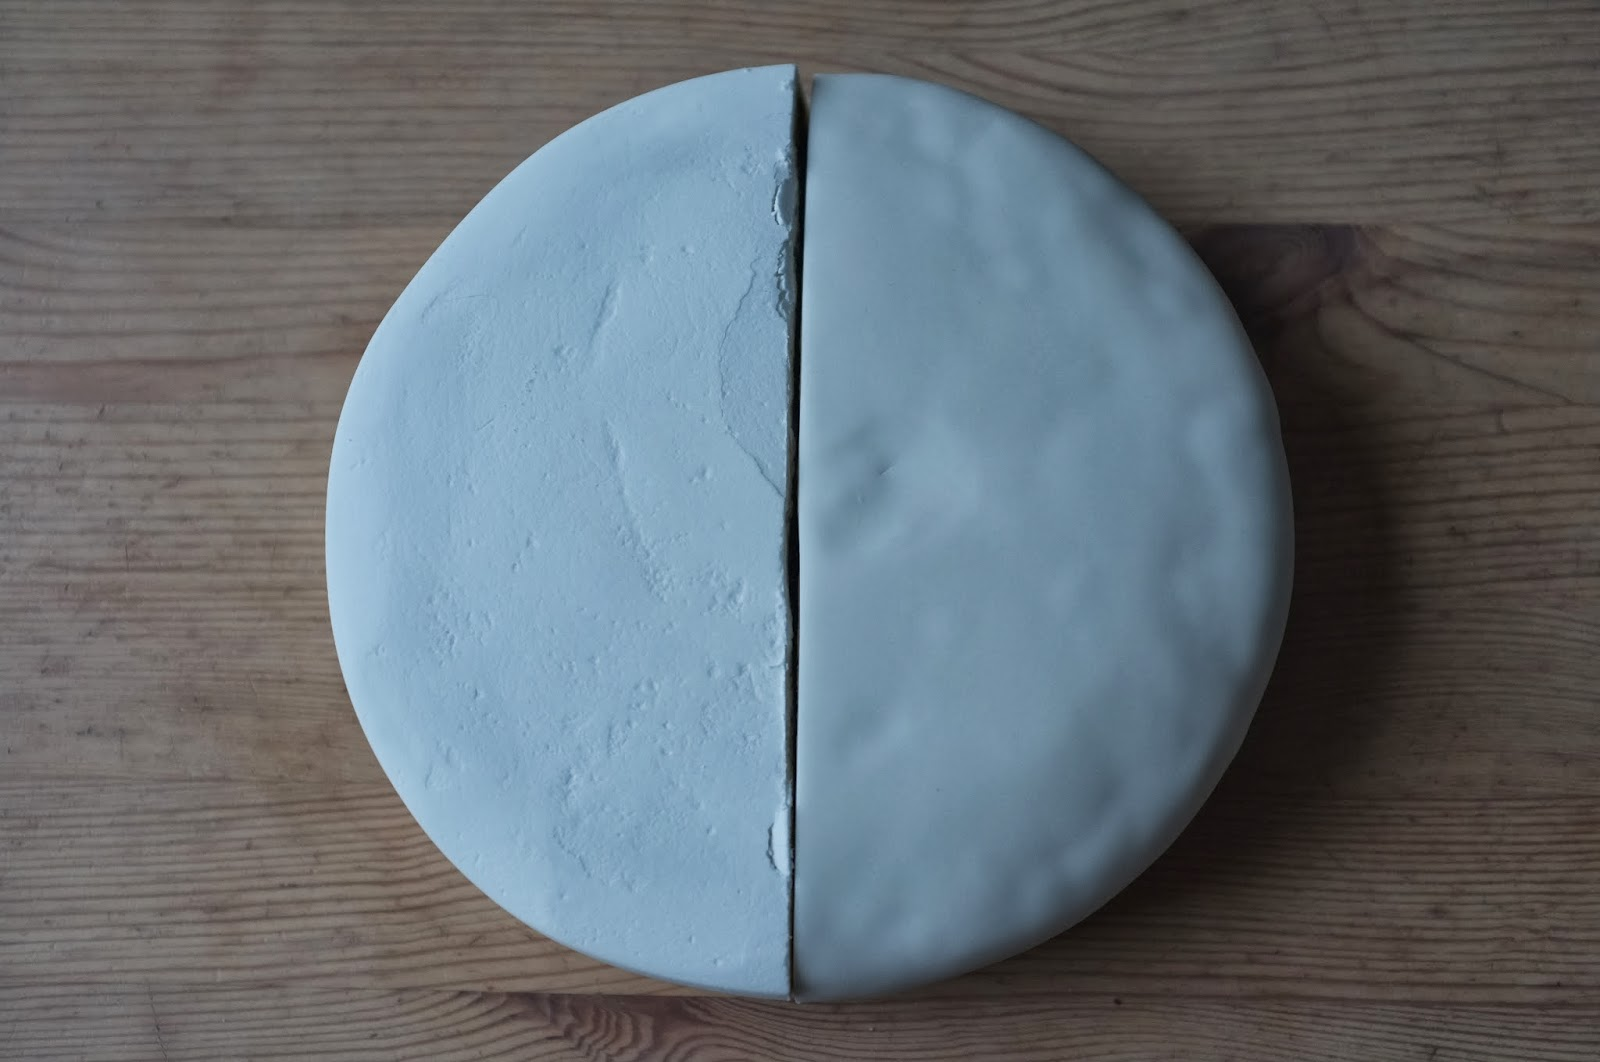 Cake Recipe For Icing With Fondant: A Little Shop In Tokyo: Royal Icing Vs. Rolled Fondant